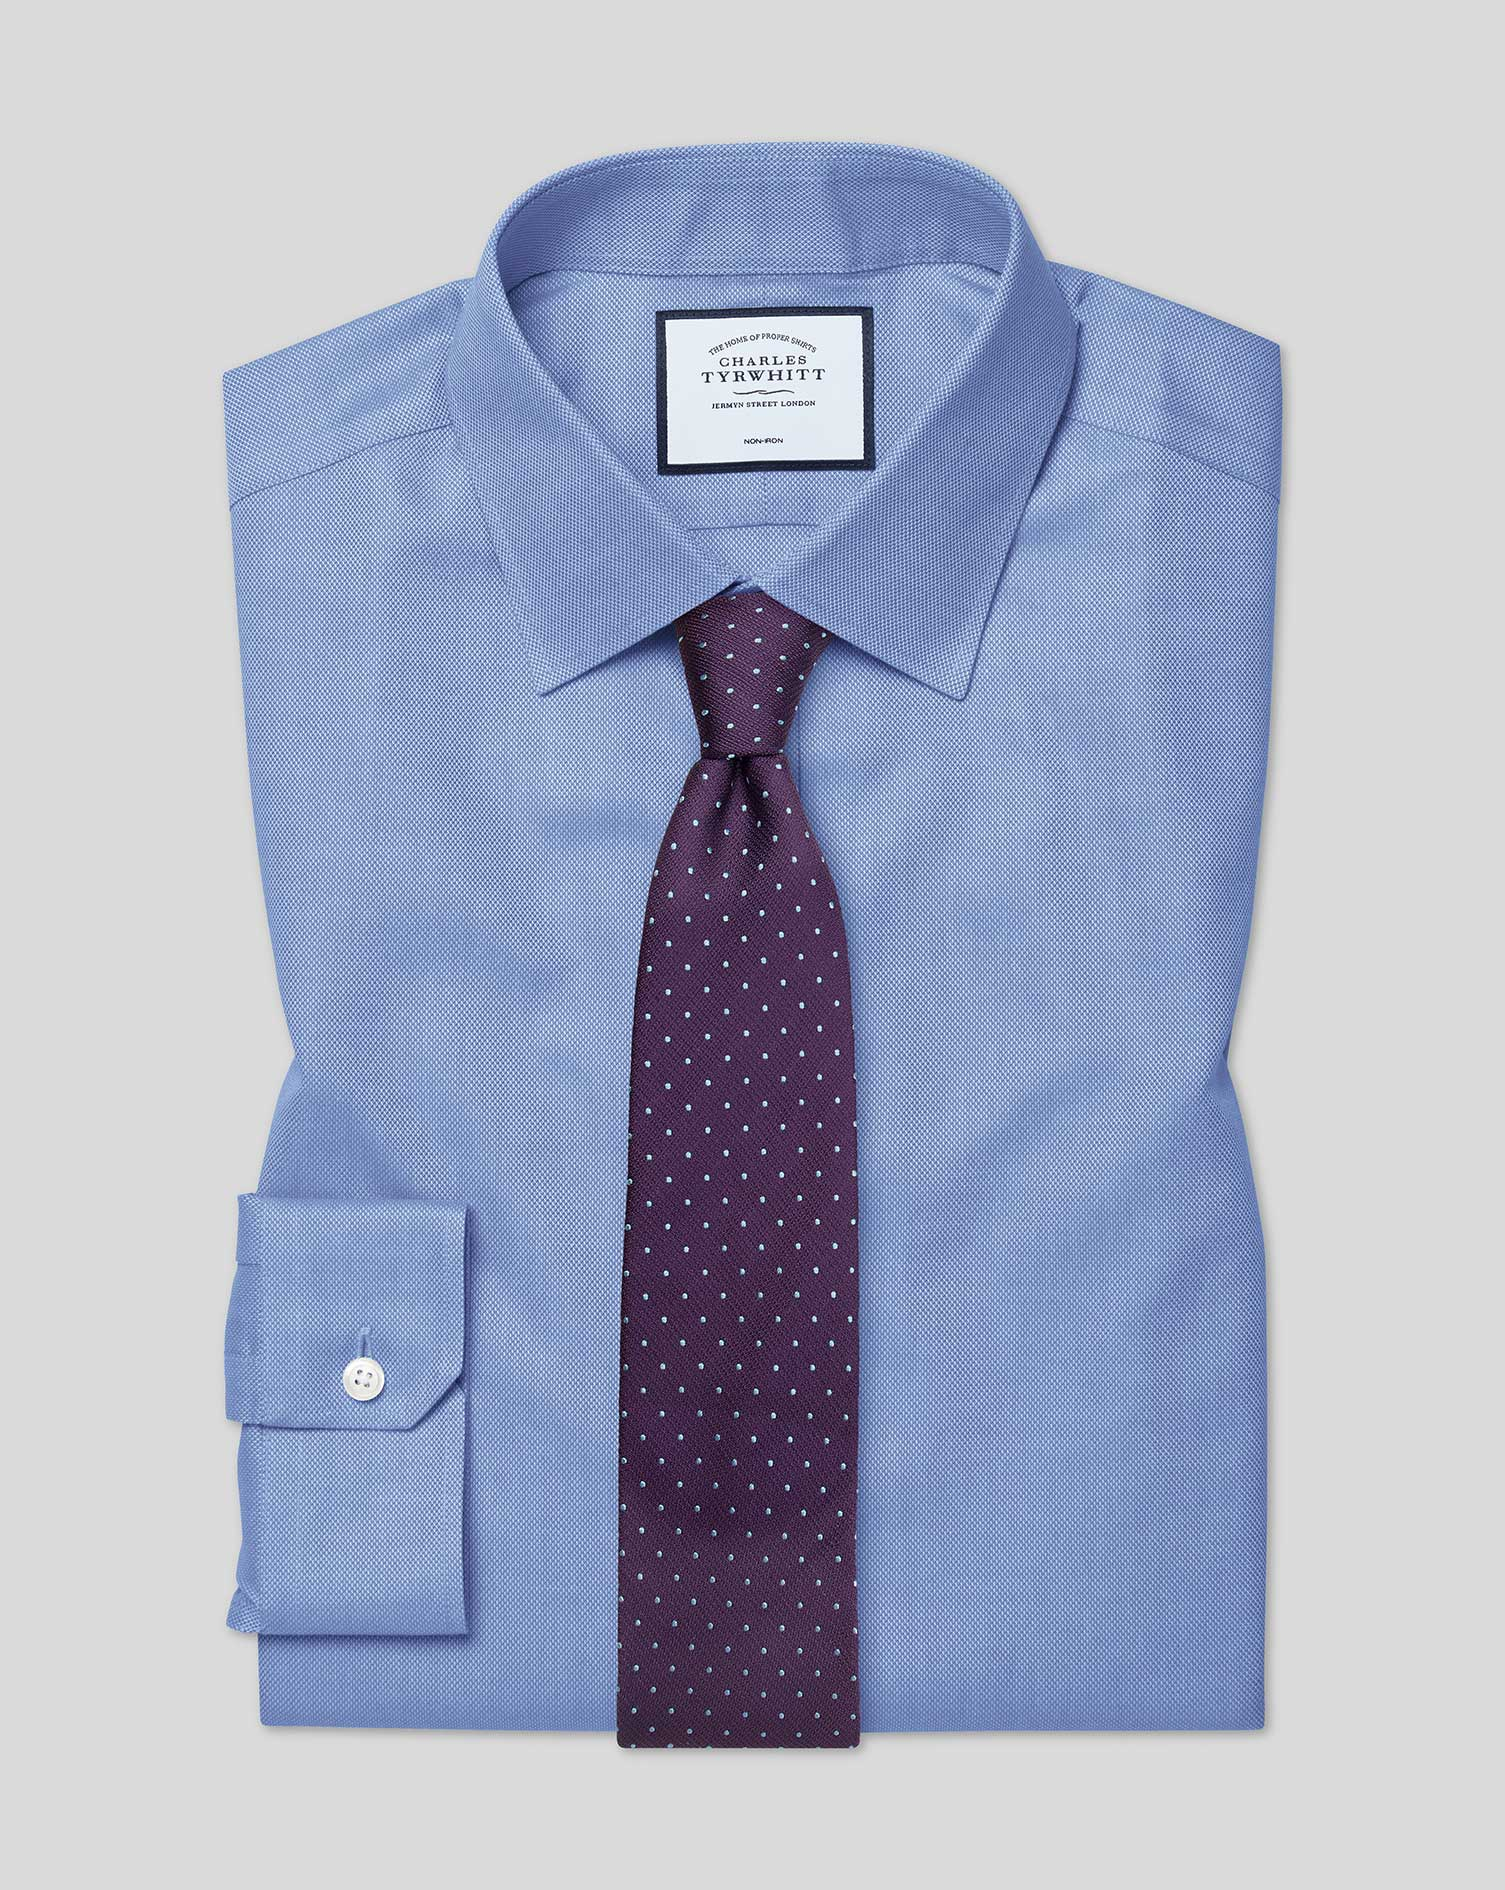 Super Slim Fit Non-Iron Royal Panama Blue Cotton Formal Shirt Single Cuff Size 15.5/34 by Charles Ty